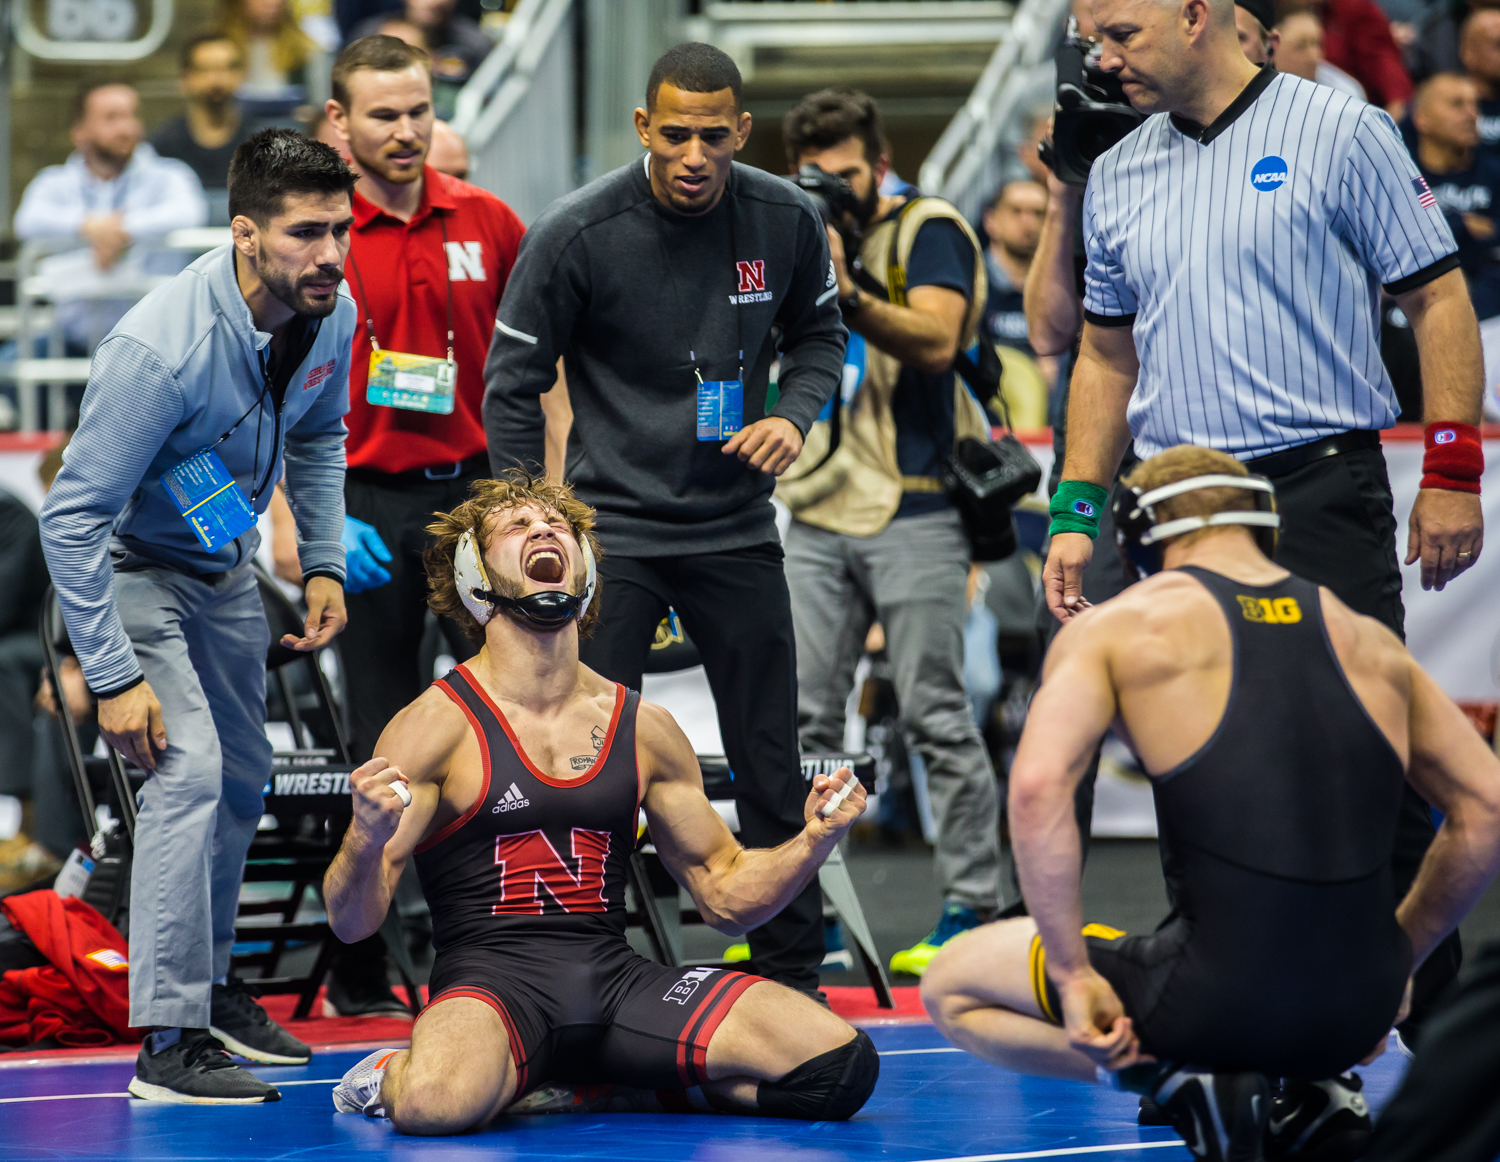 Nebraska%E2%80%99s+Tyler+Berger+celebrates+defeating+Iowa%27s+Kaleb+Young+during+the+fourth+session+of+the+2019+NCAA+D1+Wrestling+Championships+at+PPG+Paints+Arena+in+Pittsburgh%2C+PA+on+Friday%2C+March+22%2C+2019.+Berger+won+by+decision%2C+5-3.